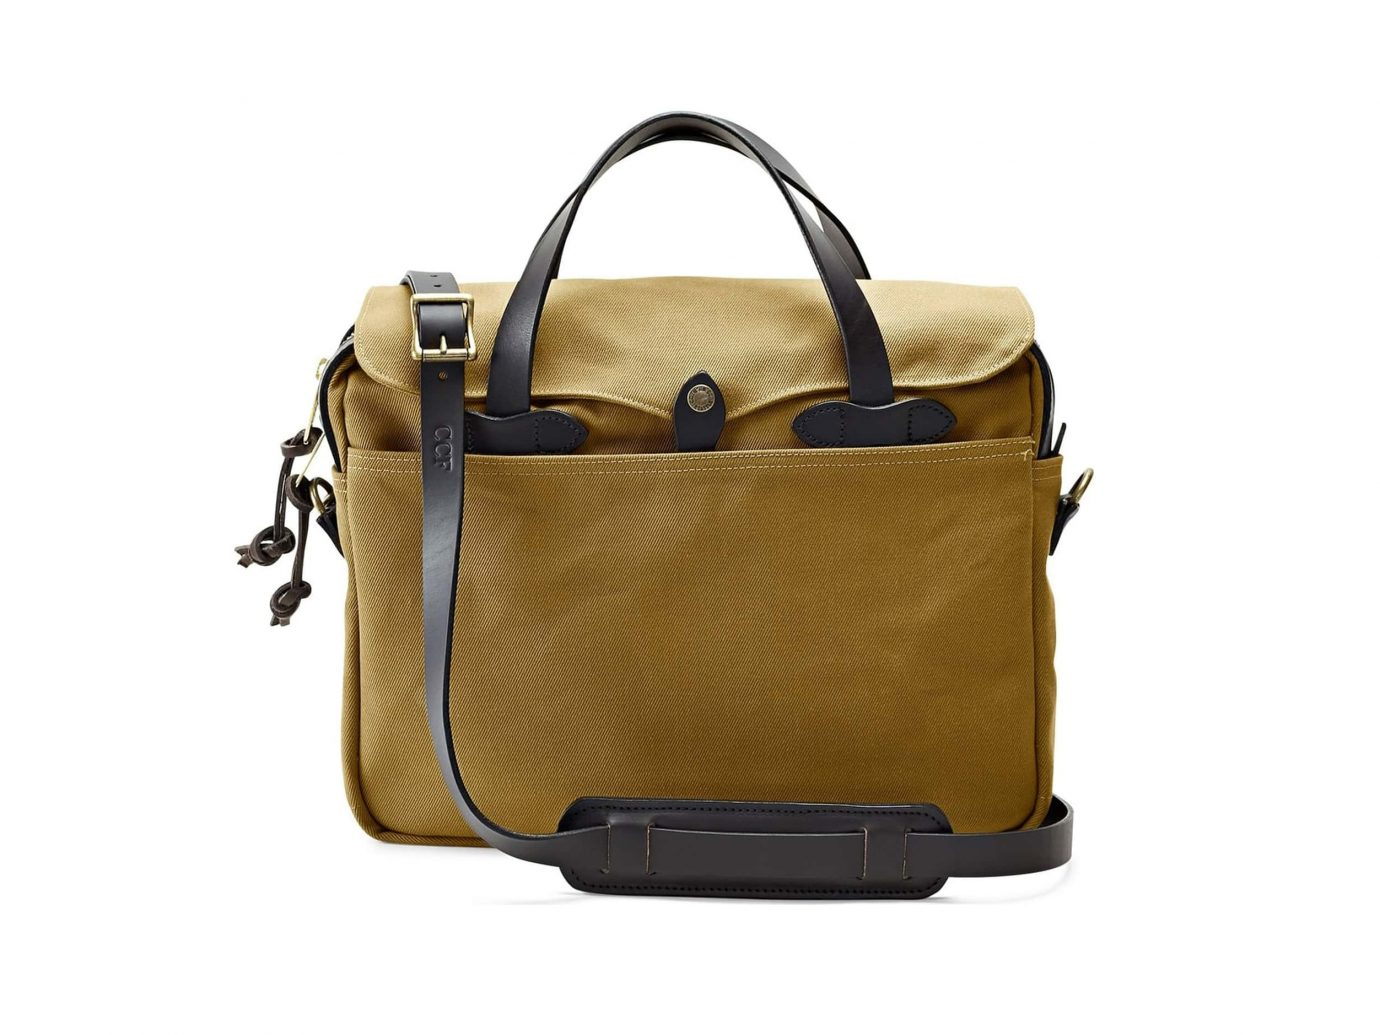 840db17caf The Best Messenger Bags for Men  12 Cool Styles We Love